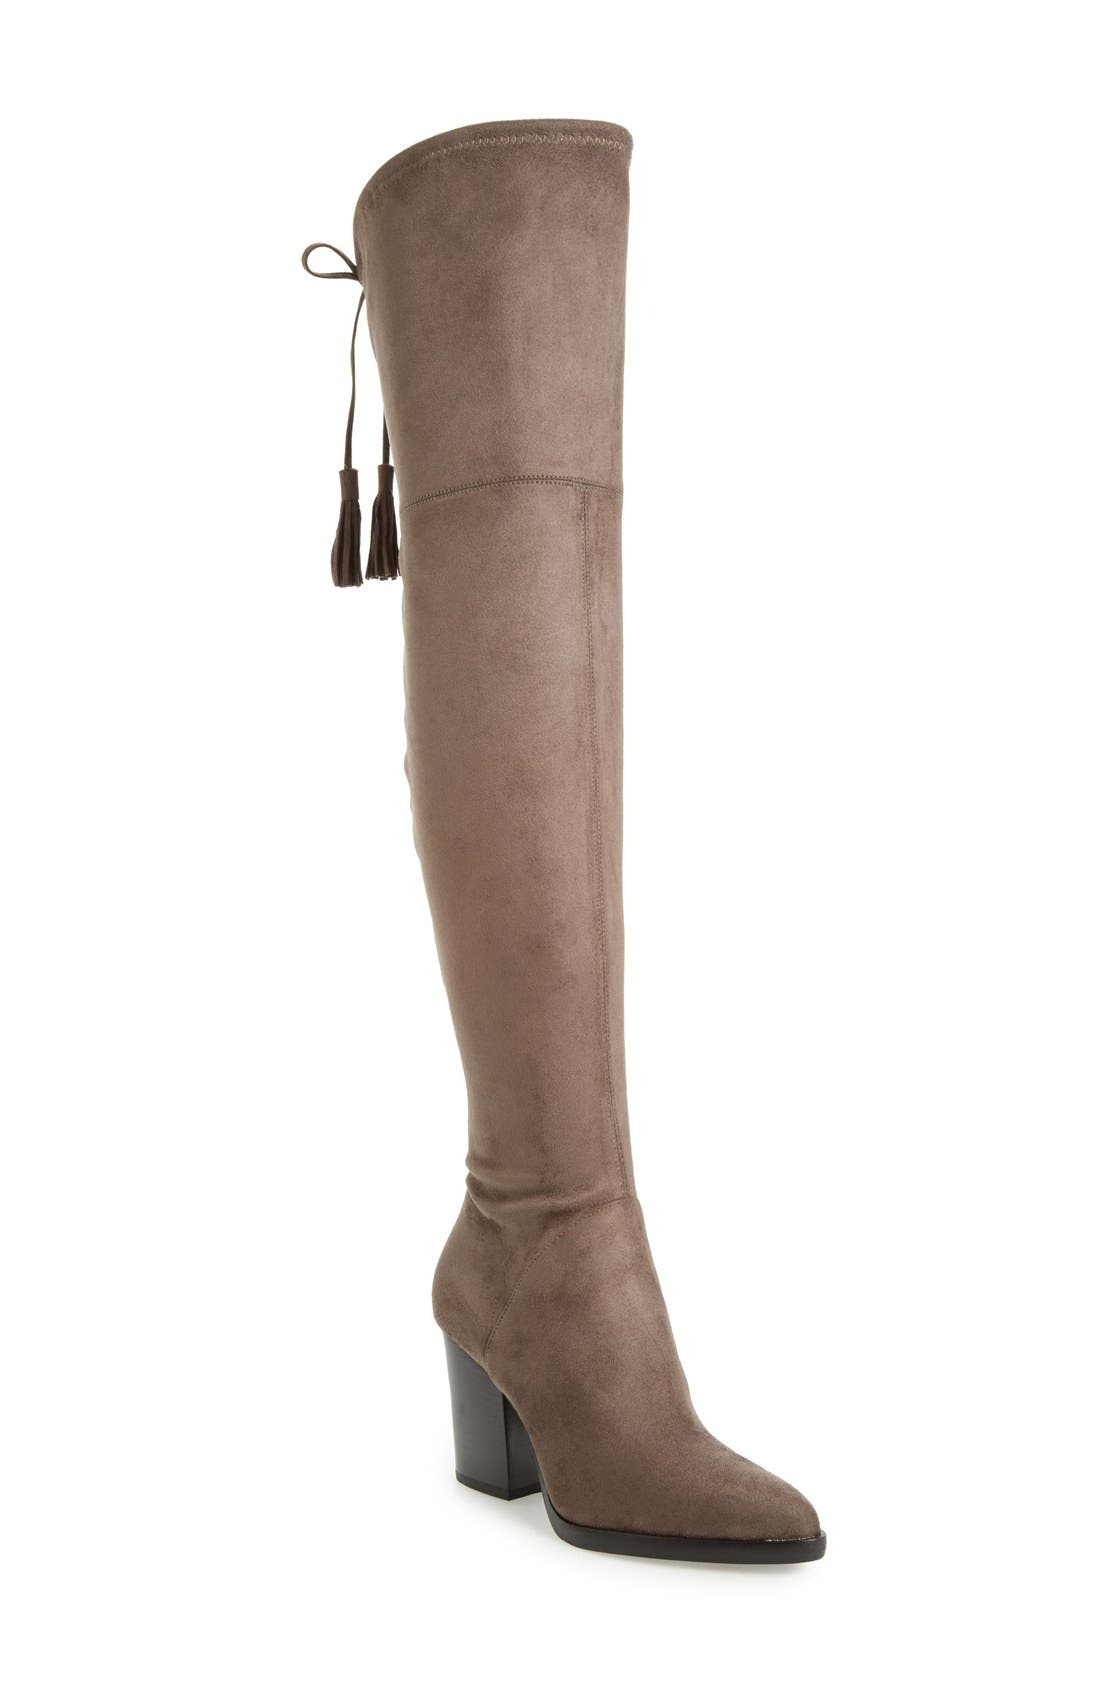 Alternate Image 1 Selected - Marc Fisher LTD 'Alinda' Over the Knee Boot (Women)